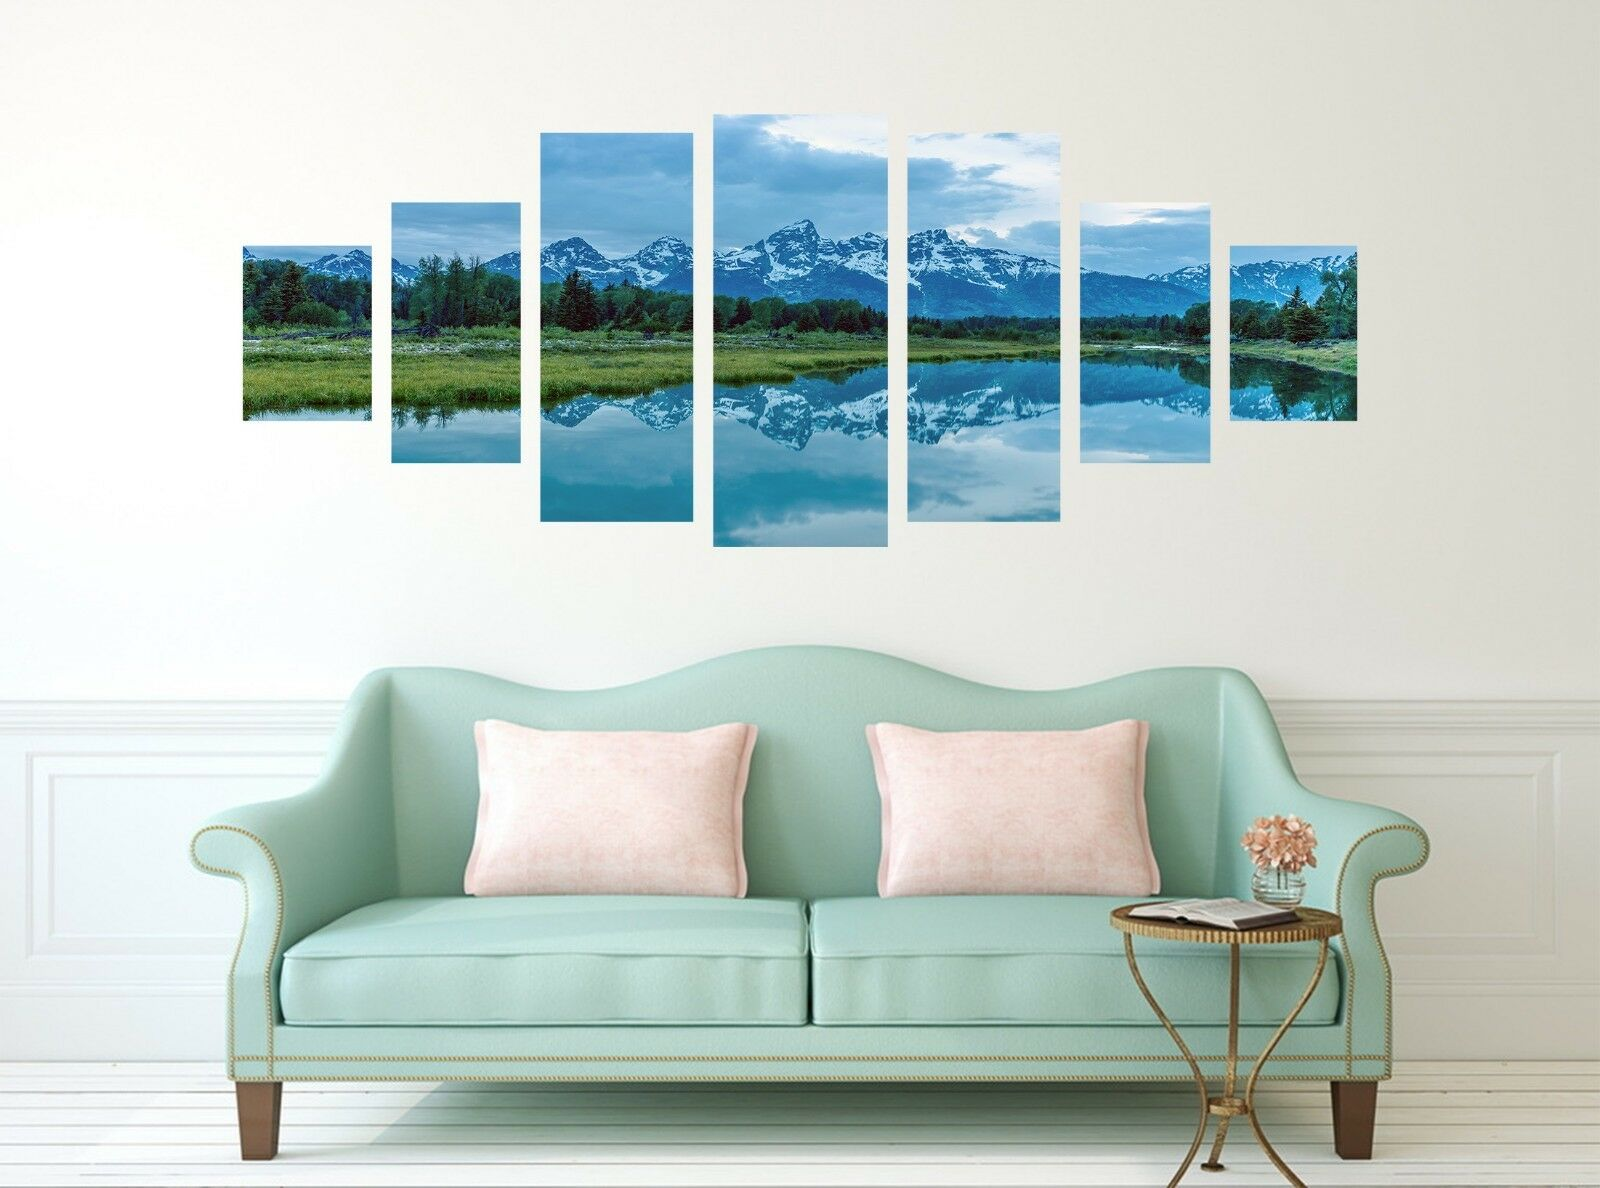 3D Natural View 6 Unframed Print Wall Paper Decal Wall Deco Indoor AJ Wall